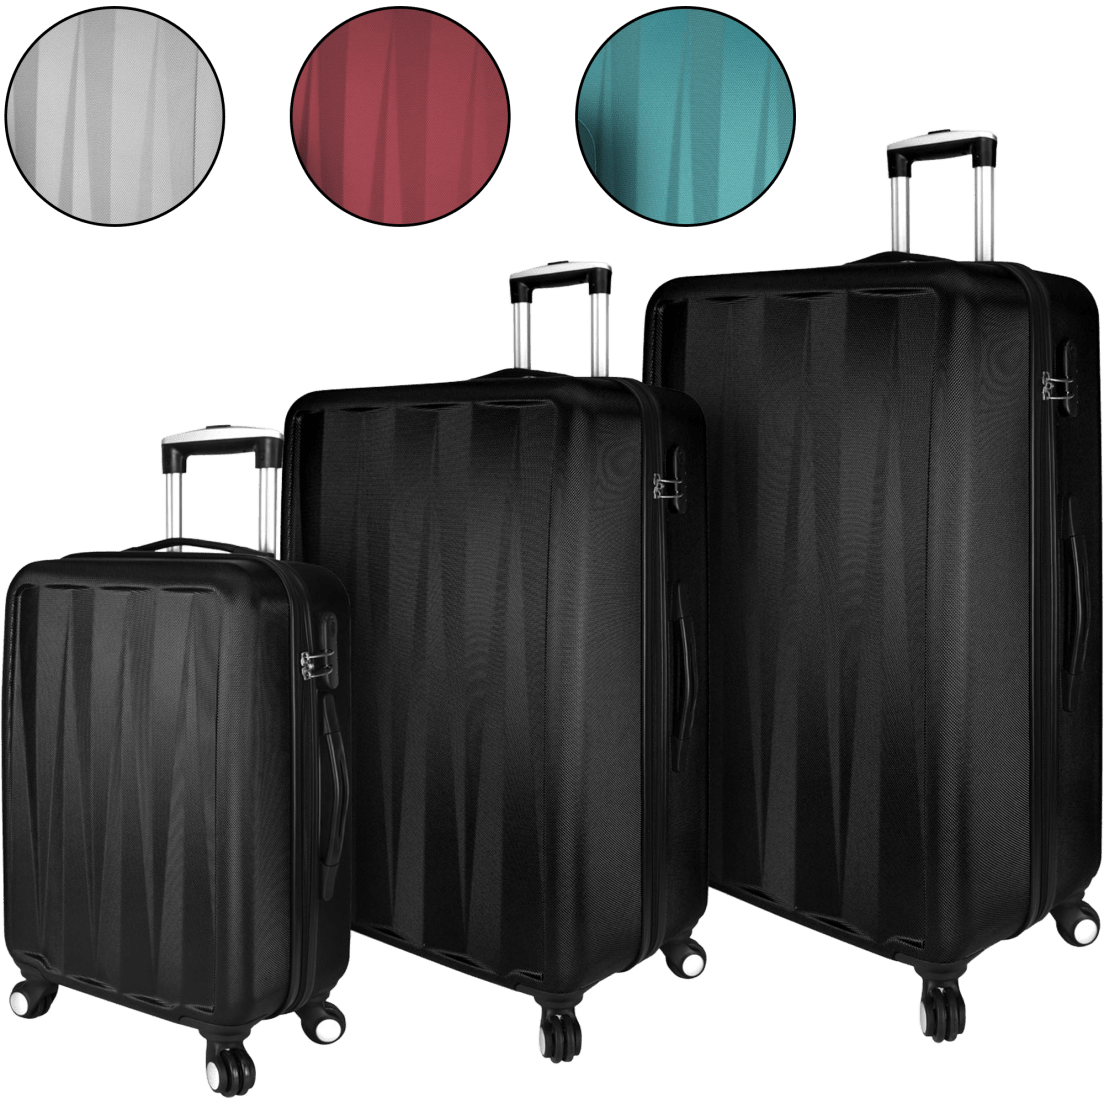 8e7703d0a504 3-Piece Verdugo Hardside Spinner Set by Elite Luggage